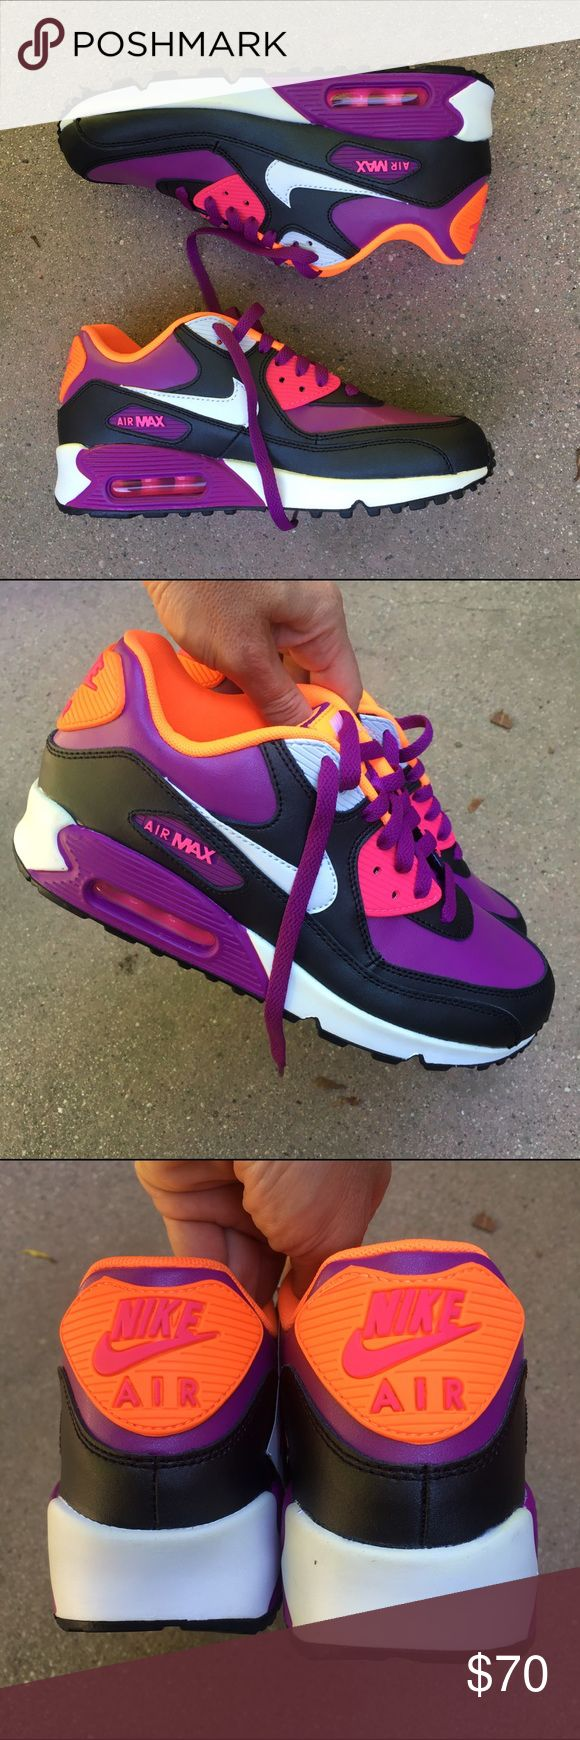 NWOB AIR MAX 90 ...SZ 5.5 youth / 7 women